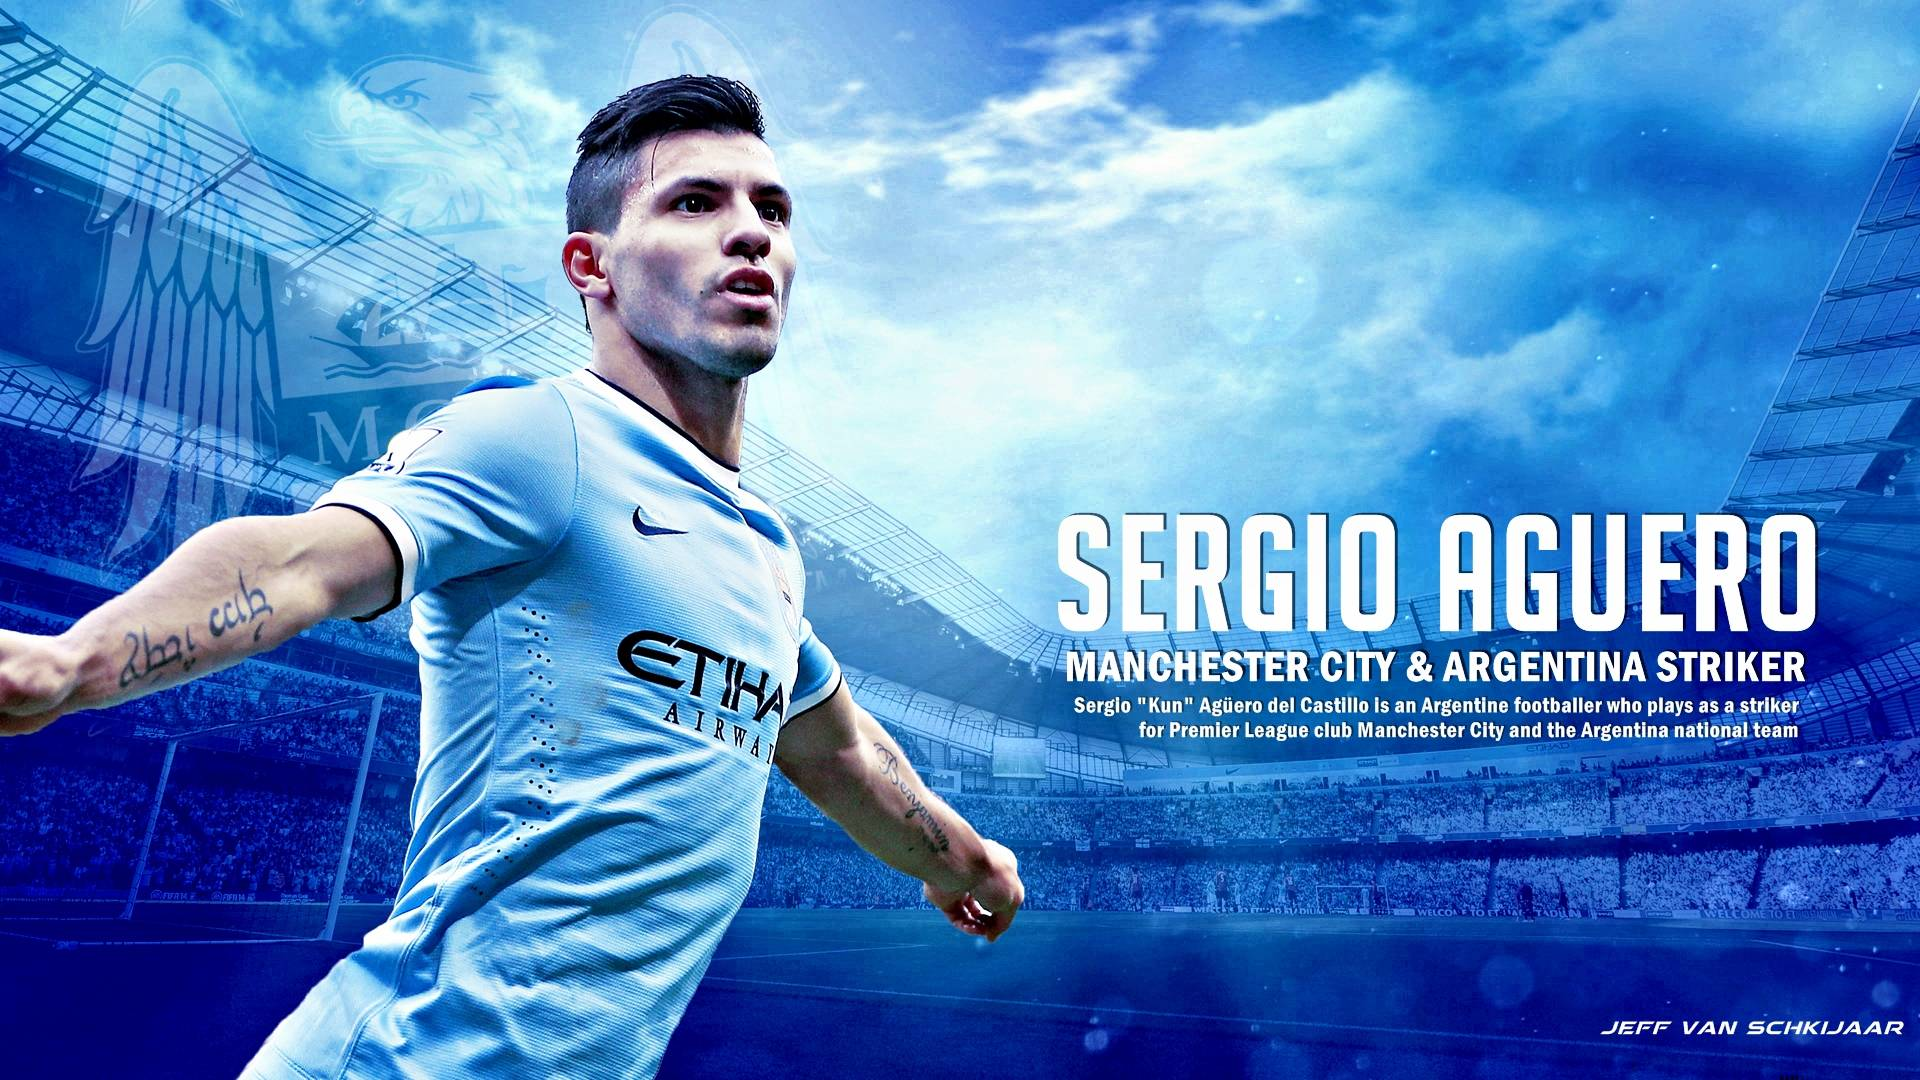 Sergio Aguero Soccer Player Wallpapers: Man City Wallpapers Terbaru 2015